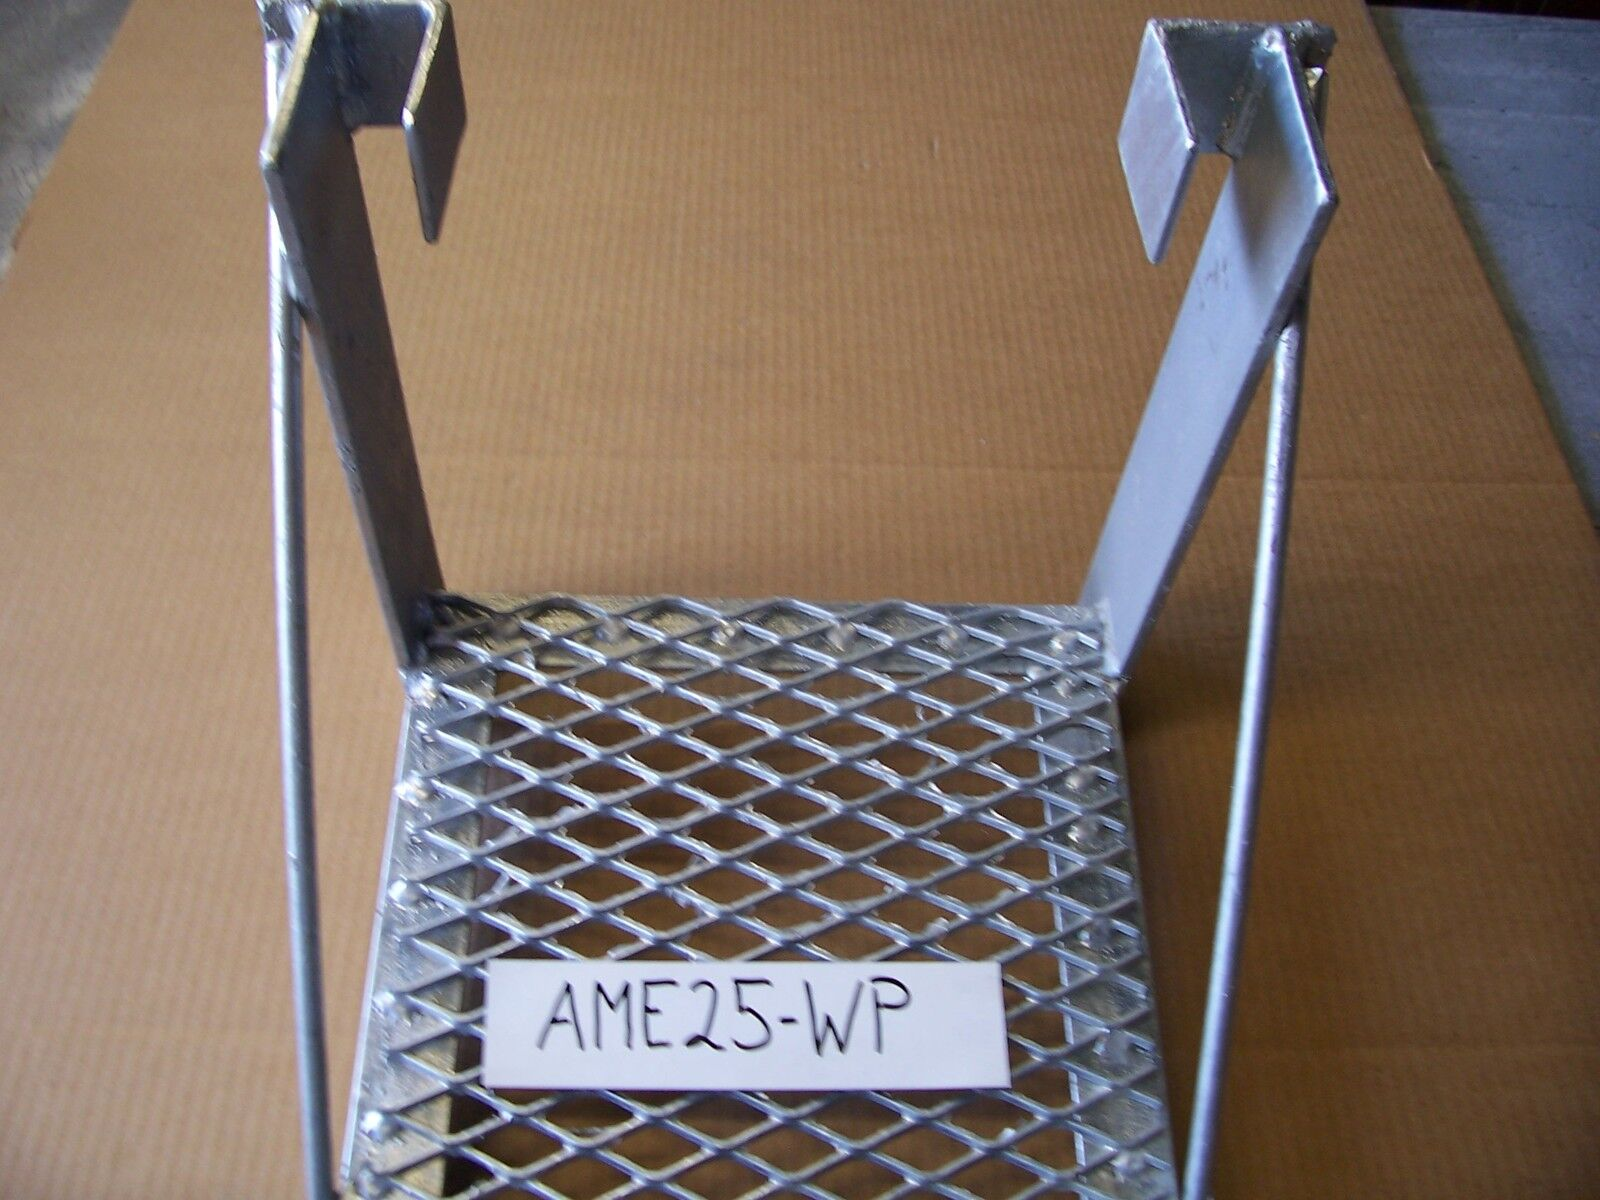 AMERICAN TOWER, Fits ROHN TOWER STYLE 25G-WORK PLATFORM, Original OEM, Hvy Duty. Buy it now for 140.00